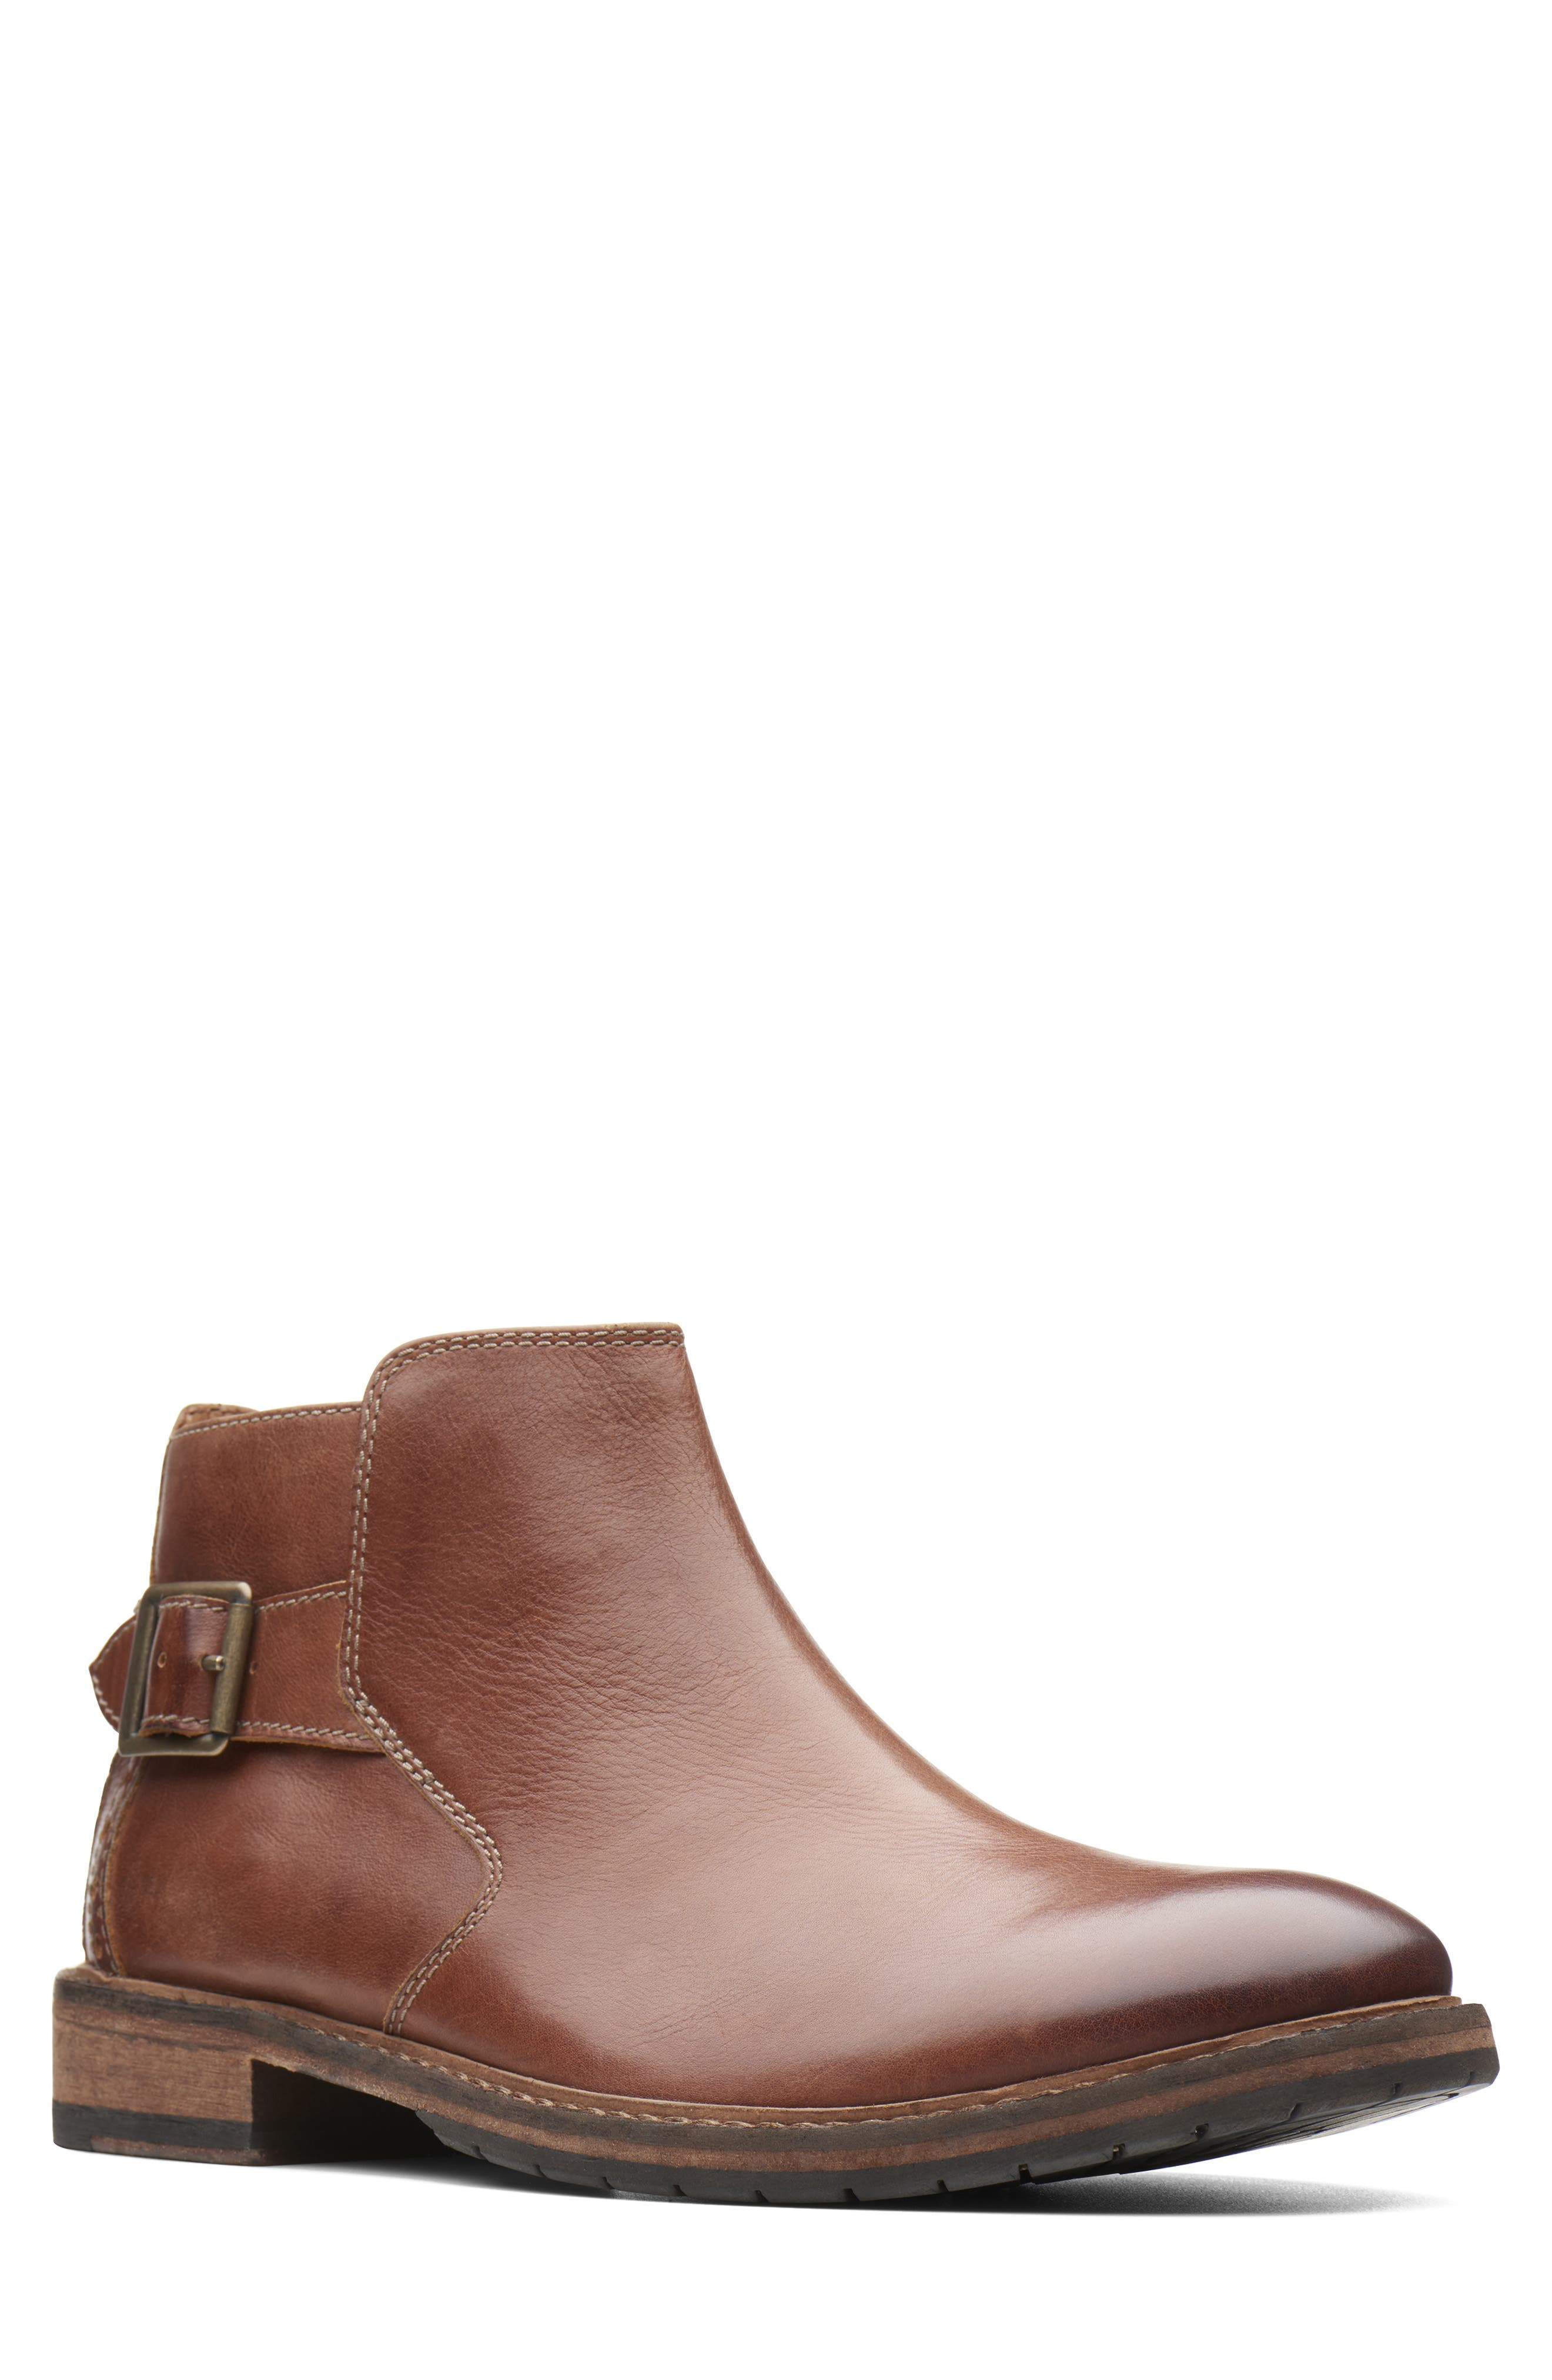 Clarks Clarkdale Remi Ankle Boot- Brown